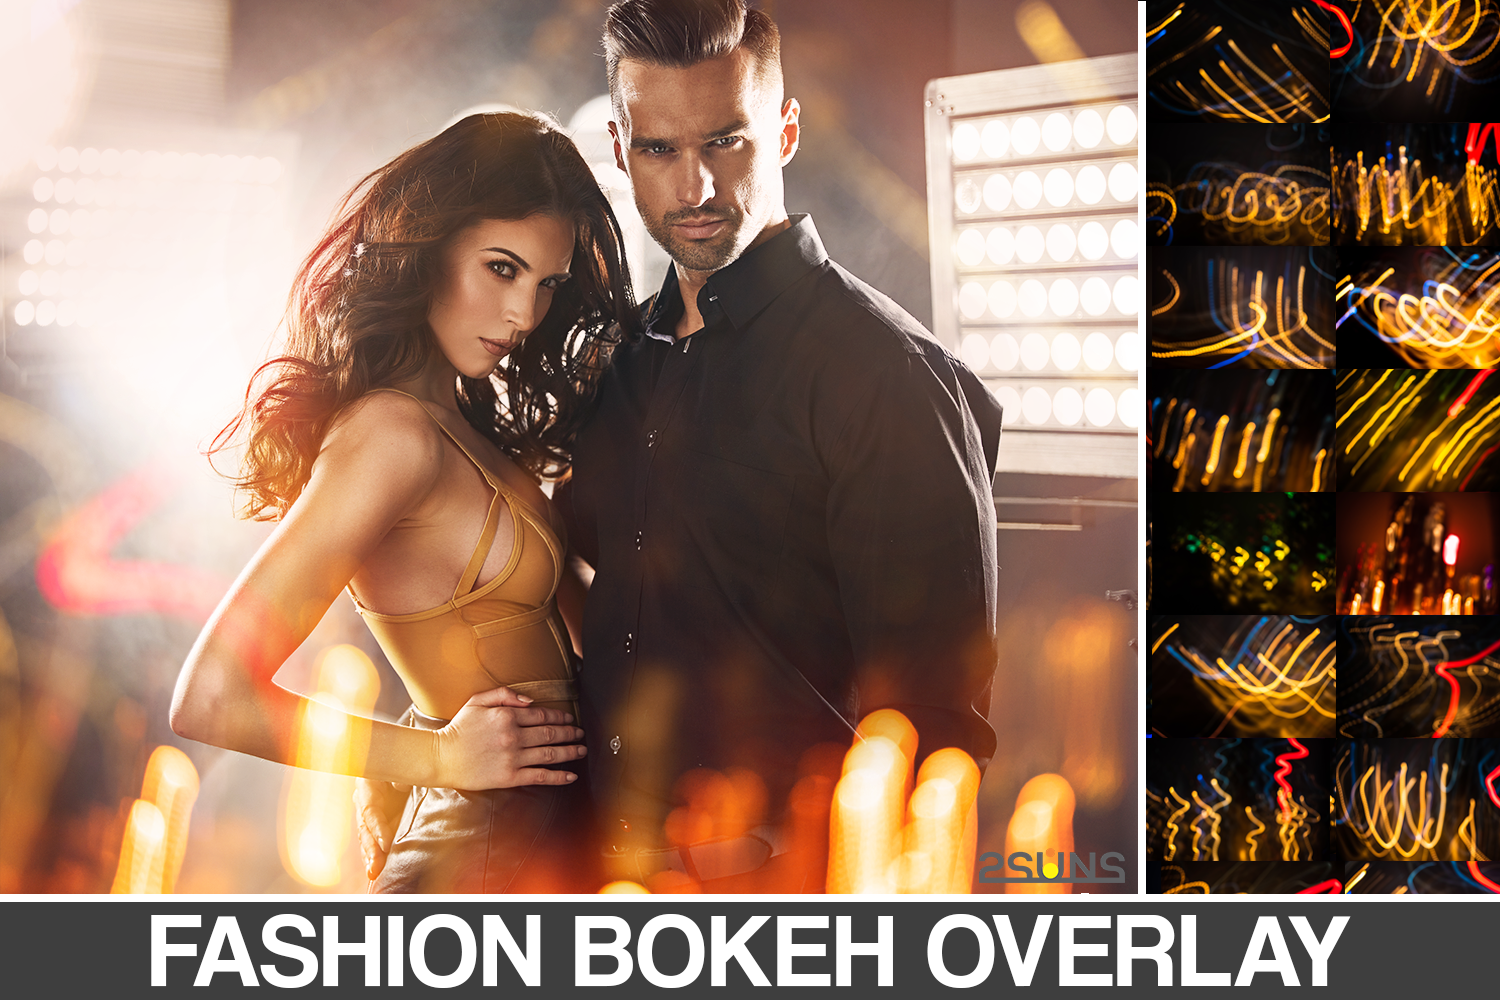 Download Free Fashion Bokeh Overlays Photoshop Graphic By 2suns Creative for Cricut Explore, Silhouette and other cutting machines.